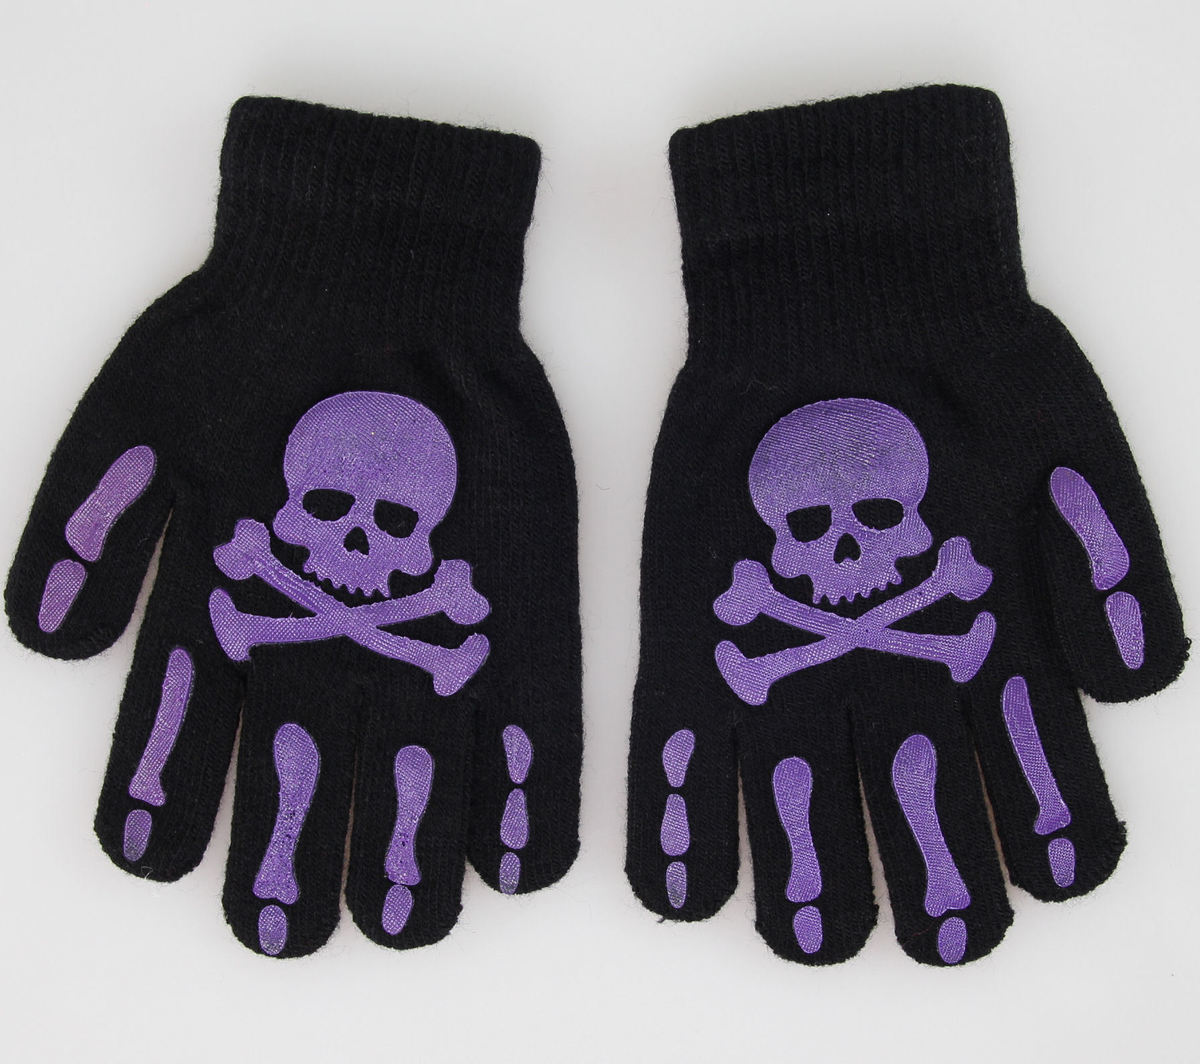 rukavice Skull - Black/Purple - W21-103